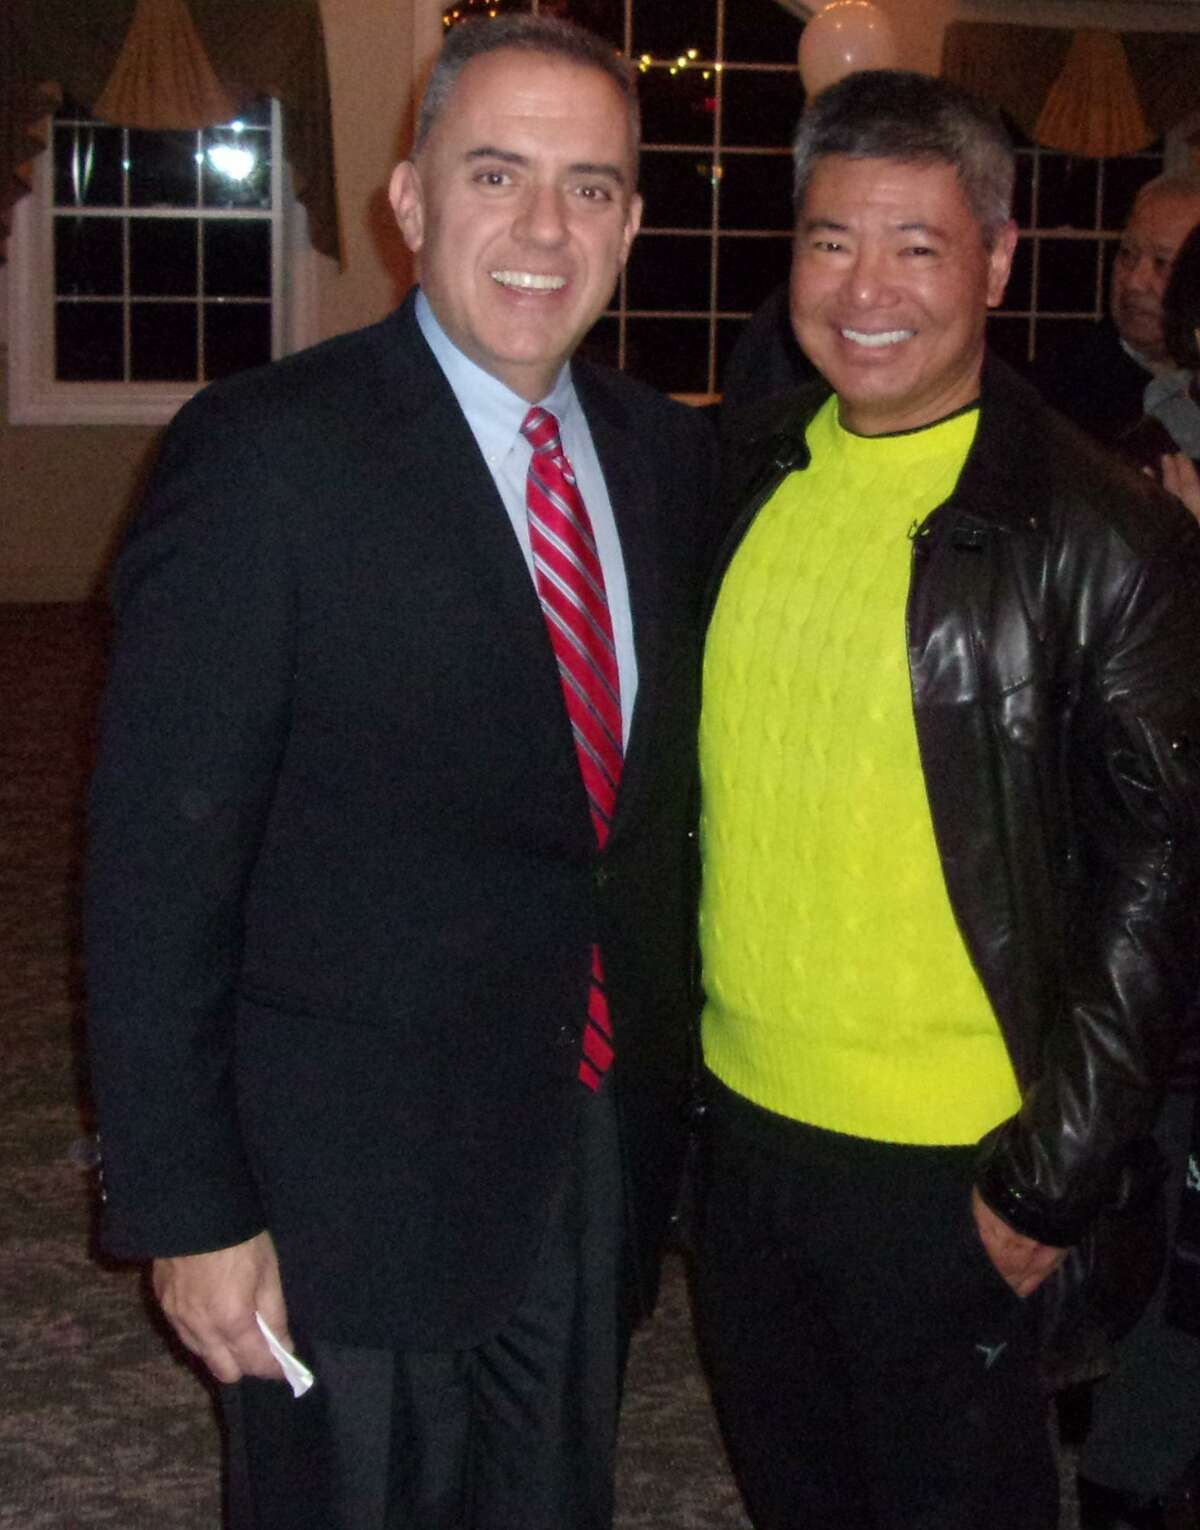 State Rep. Eric Berthel with Derick TeeKing, a childhood friend from Southbury who was visiting from San Fransisco, awaiting results of the 32nd District state Senate special election Tuesday in Watertown.